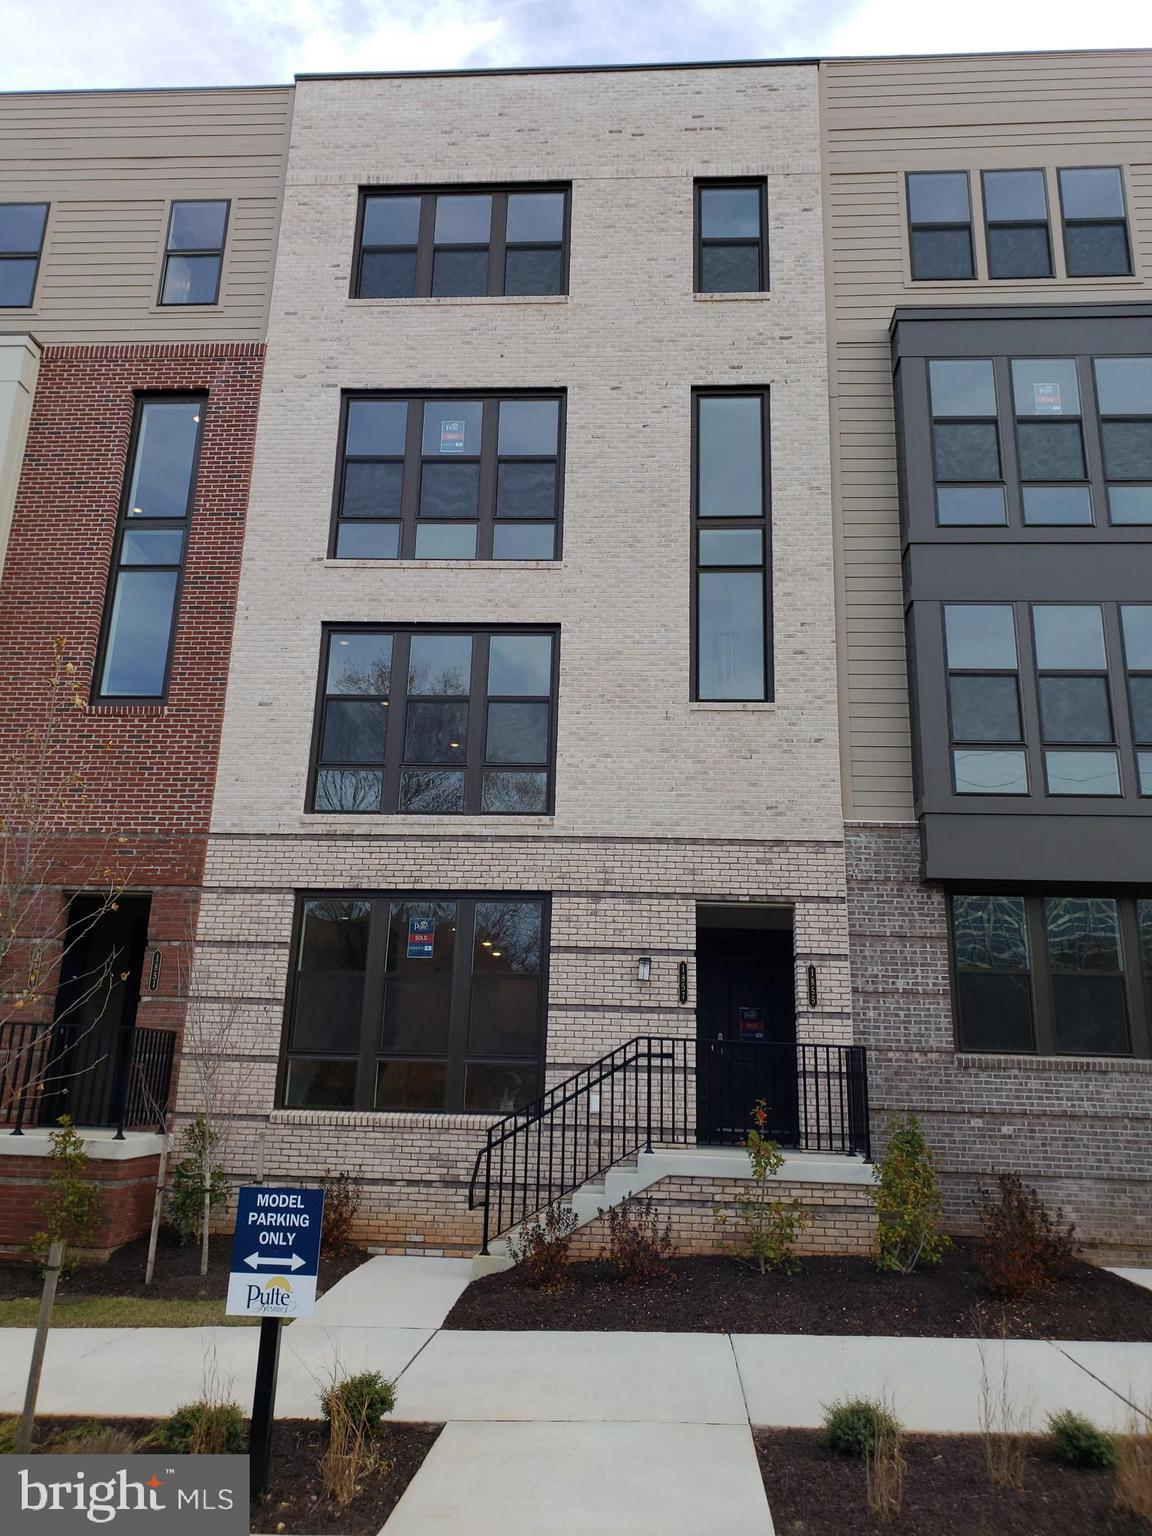 BRAND NEW LUXURY 2-LEVEL TH/CONDO W/ 1 CAR GARAGE AT THE BRAND NEW LOFTS OF RESTON STATION.  EASY WALK TO RESTON-WIEHLE AVE METRO!! (CLICK MAP TO SEE HOW CLOSE!). COMPLETELY OPEN FLOOR PLAN, SS APPLIANCES, GAS STOVE, QUARTZ COUNTERS, WOOD FLOORS, RECESSED LIGHTING, 42'' CABINETS, 3 LARGE BEDROOMS UPSTAIRS, LUXURY MBA W/ DUAL VANITIES & DUAL SHOWER W/ GLASS DOOR.  ADDL WALK-IN CLOSET IN MBA.  FLOOR TO CEILING WINDOWS ON FIRST FLOOR. 1 ADDITIONAL ASSIGNED PARKING SPACE. NEXT TO W & OD TRAIL & BIKE SHOP/CAFE.  AVAILABLE IMMEDIATELY. PREFER 2-3 YEAR LEASE.